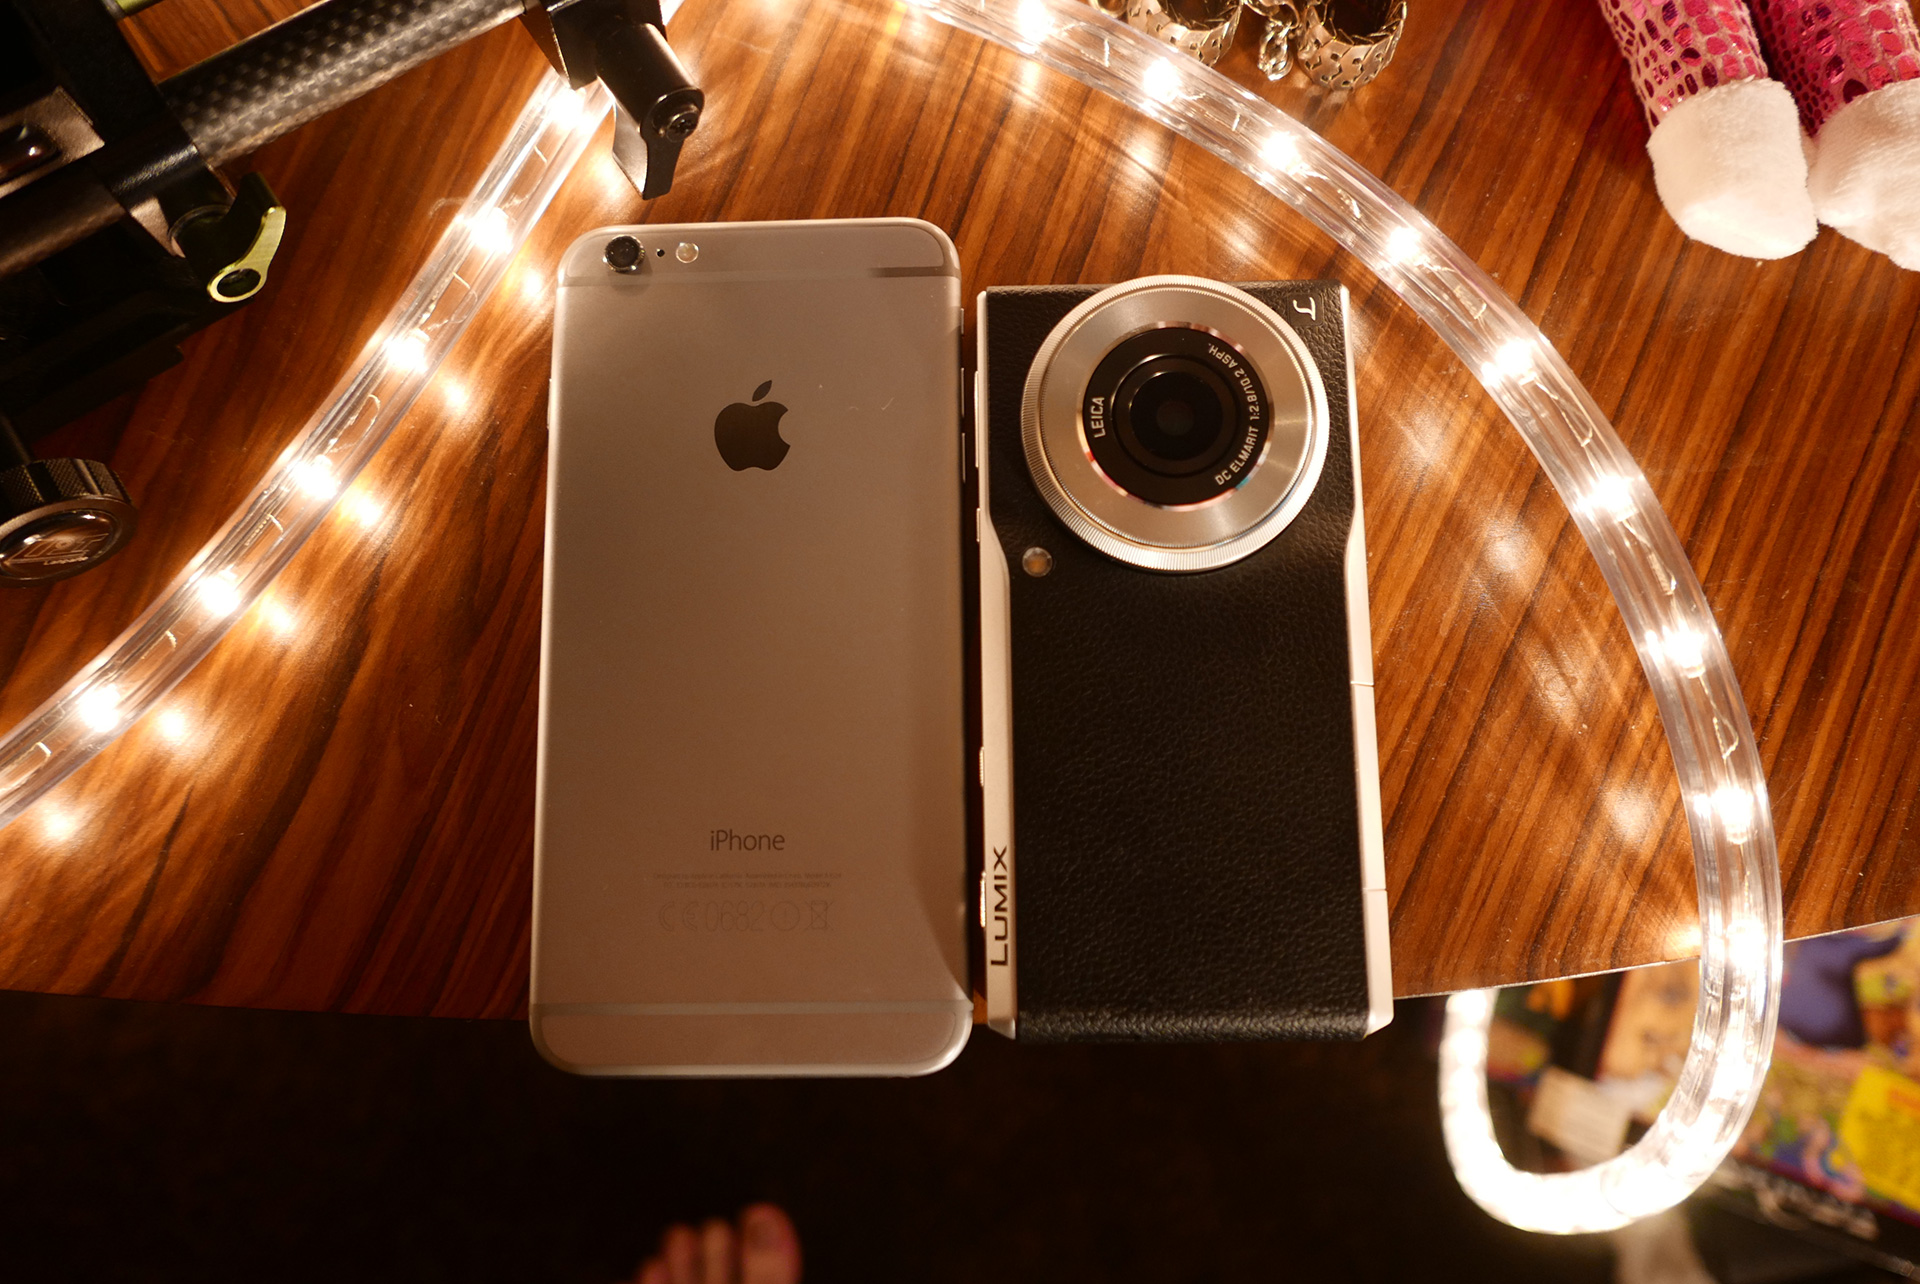 The CM1 next to the iPhone 6 Plus